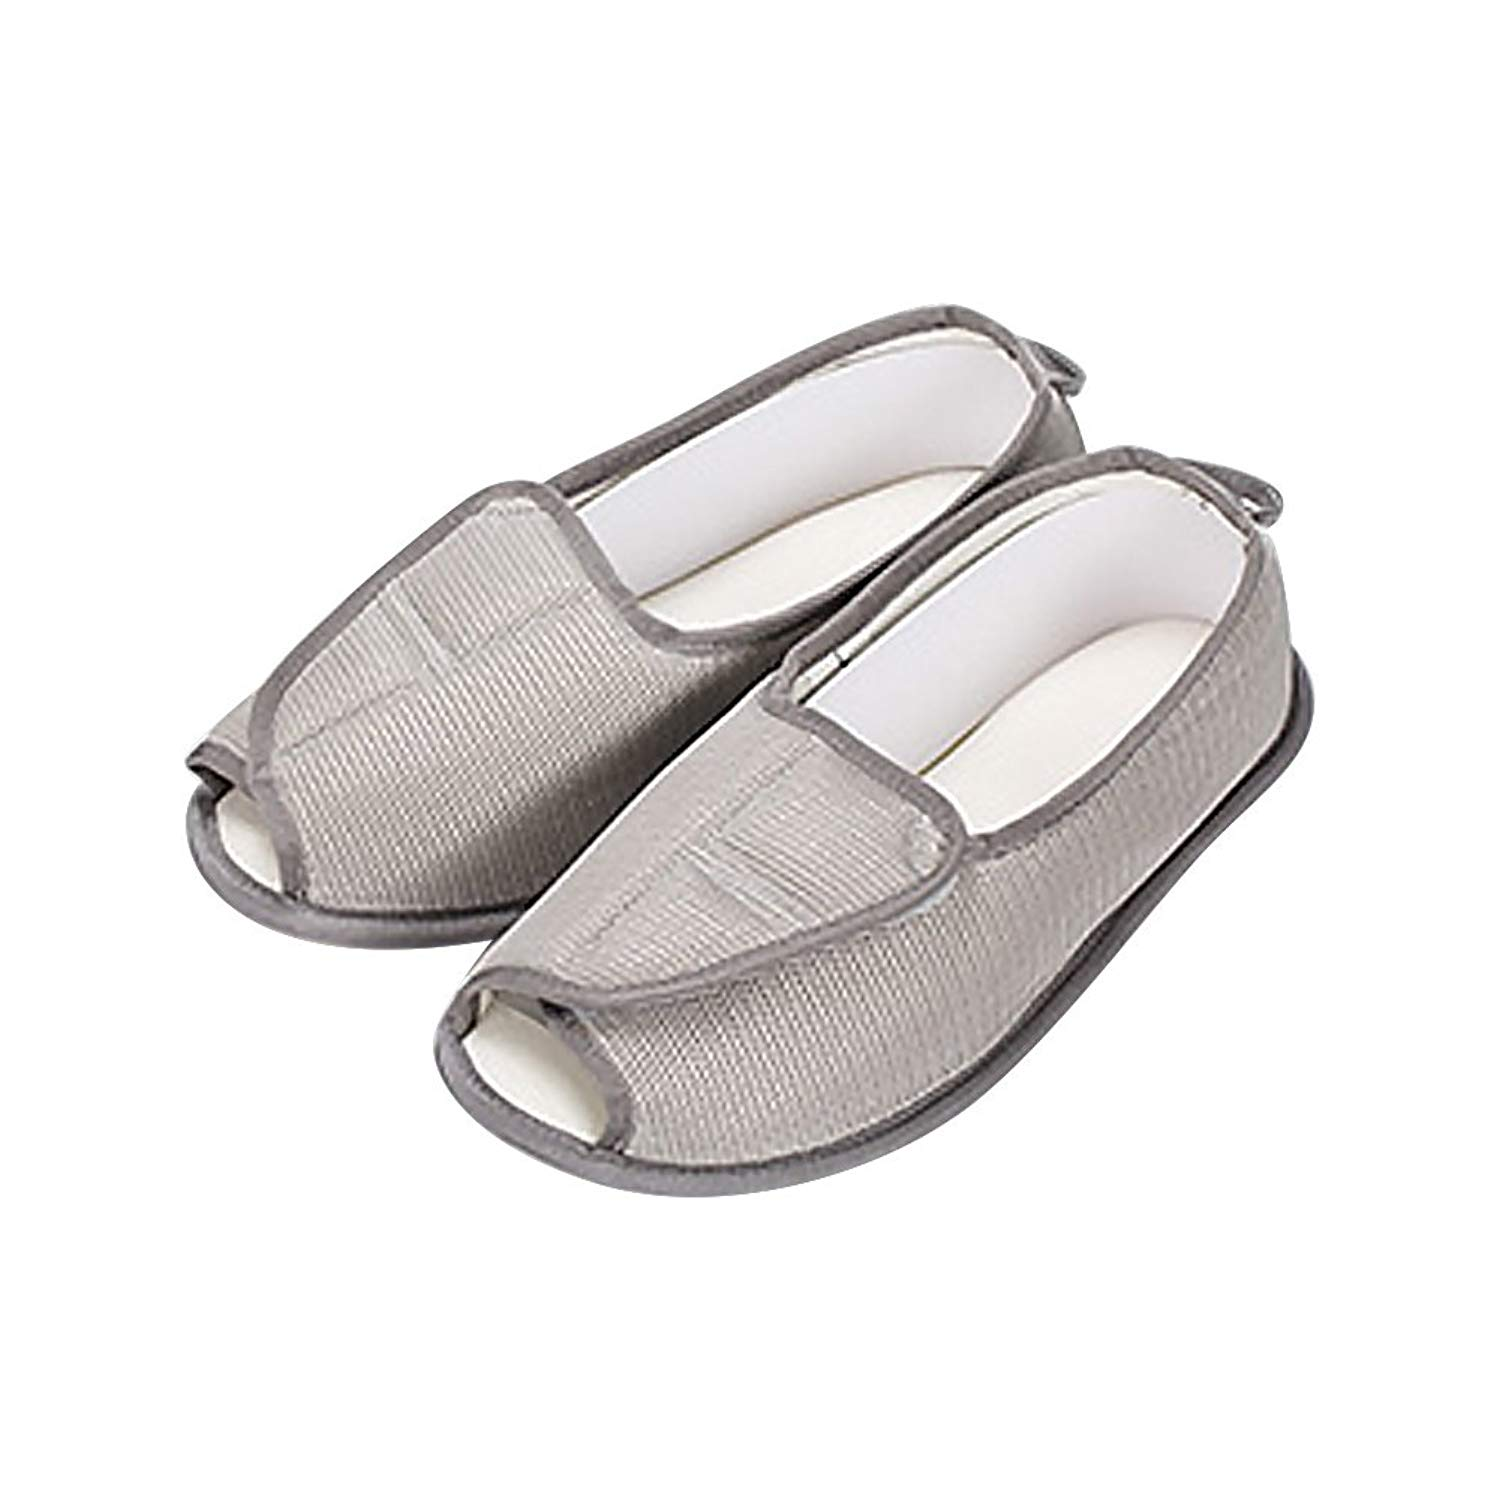 2e3bad09b0c6 Get Quotations · Women s Diabetic Slippers Arthritis Edema Adjustable Memory  Foam Comfortable Slippers Extra Wide Shoes